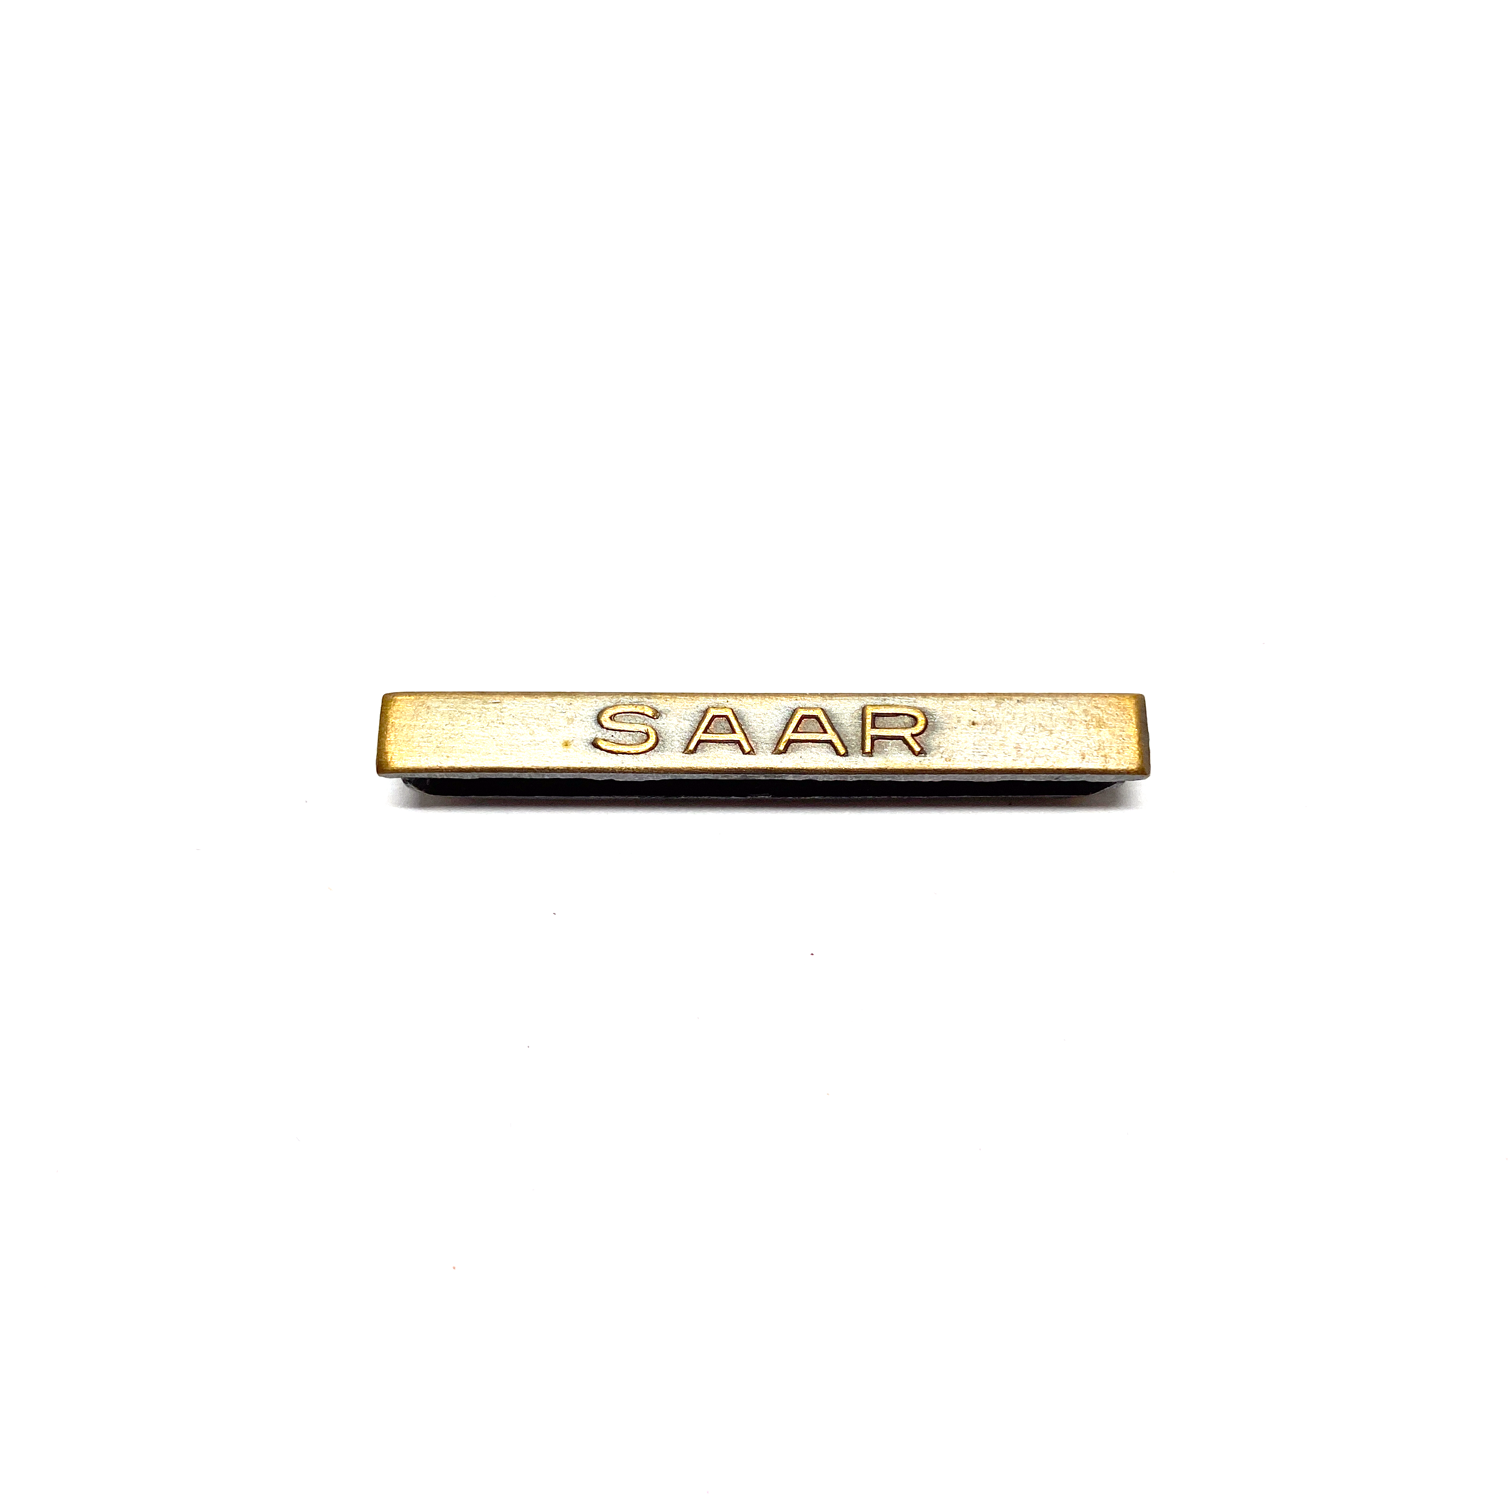 Bar Saar for war medals